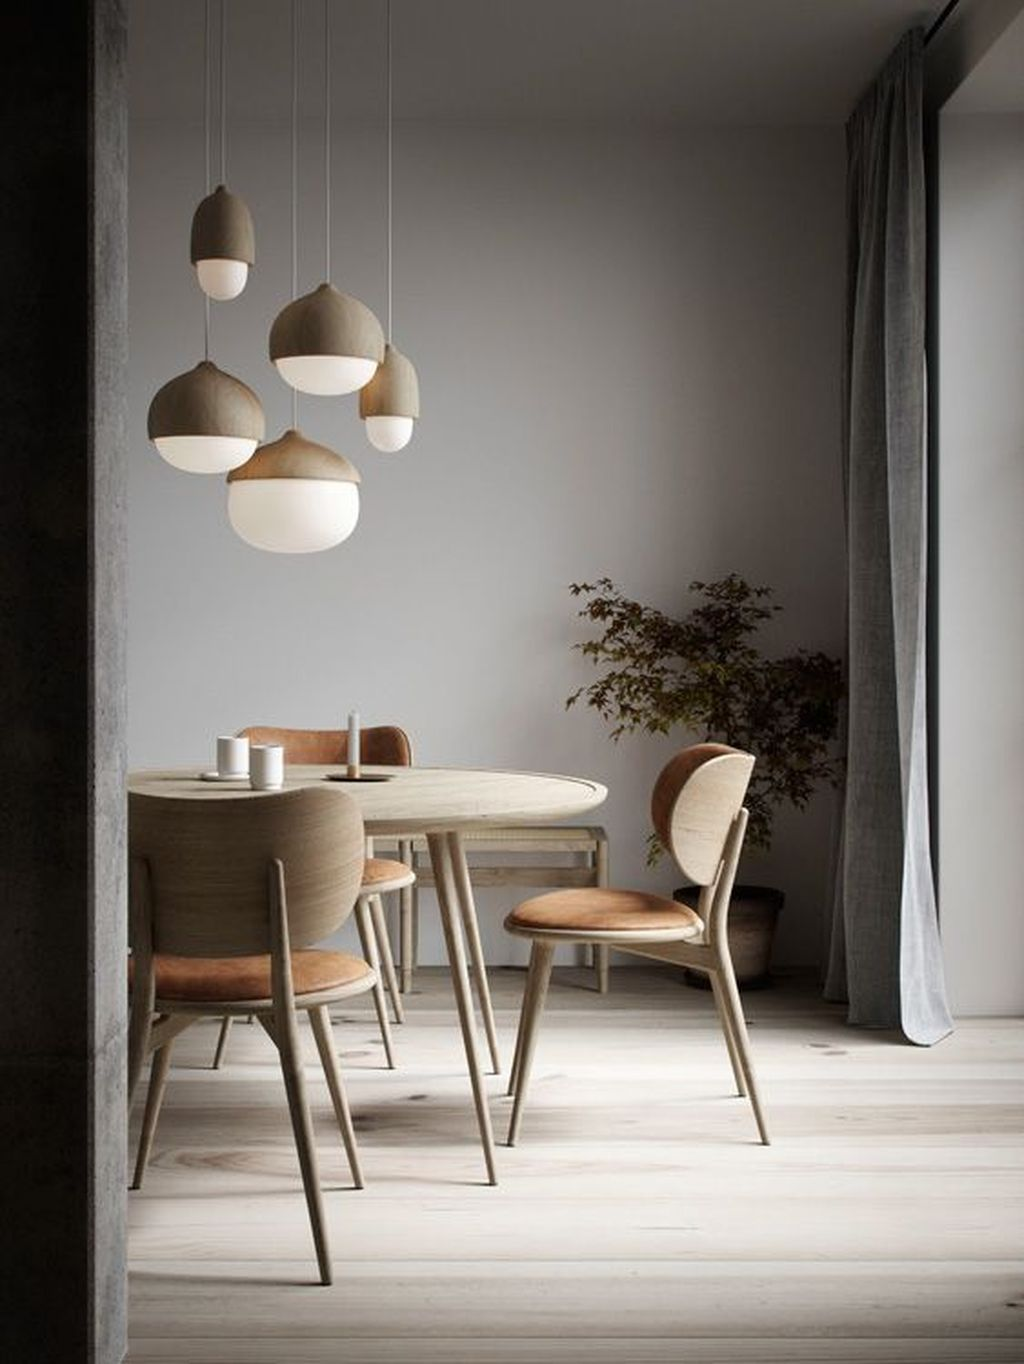 Admirable Dining Room Design Ideas You Will Love 01 1